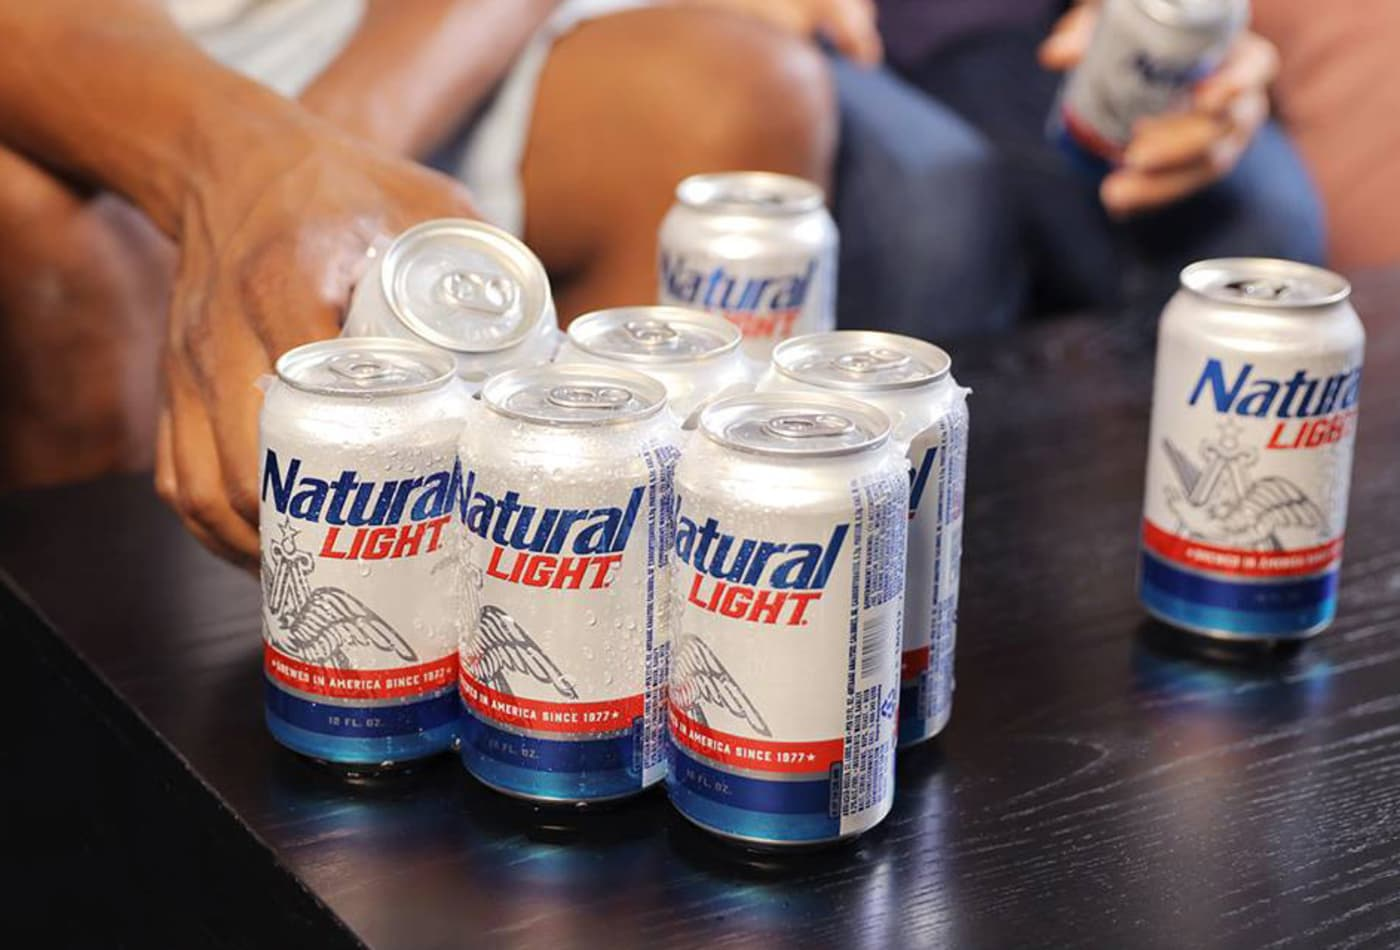 Natty Light is giving away $1,000,000 to help grads pay off